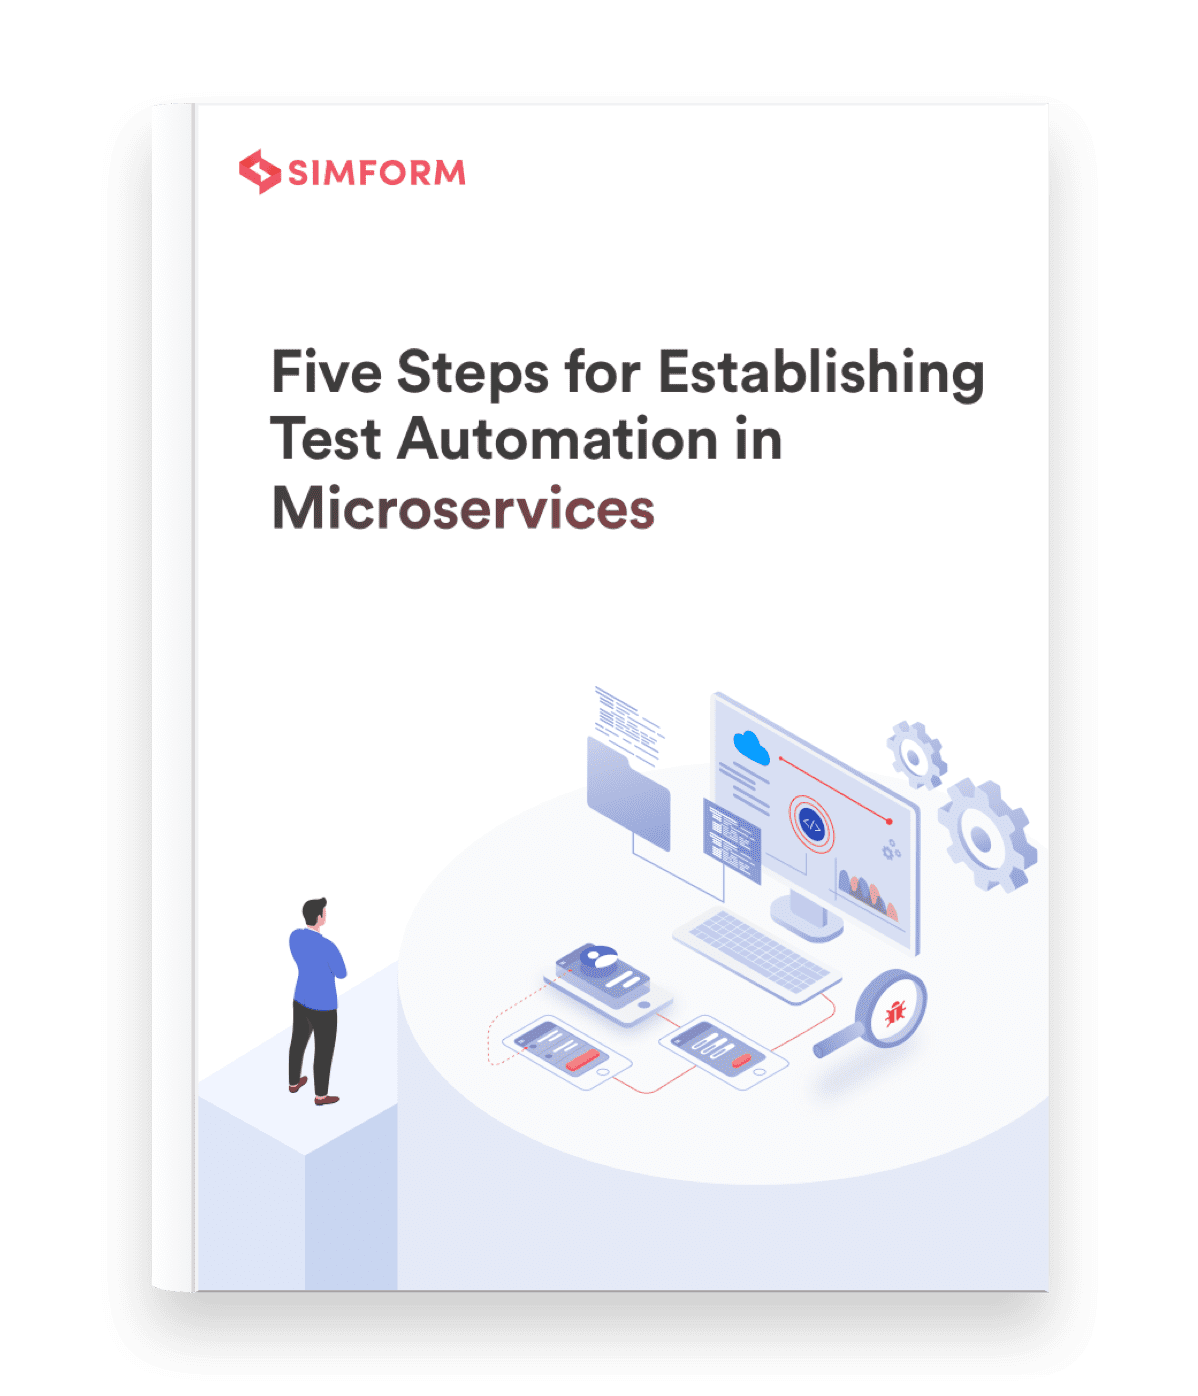 5 Steps for Establishing Test Automation in Microservices